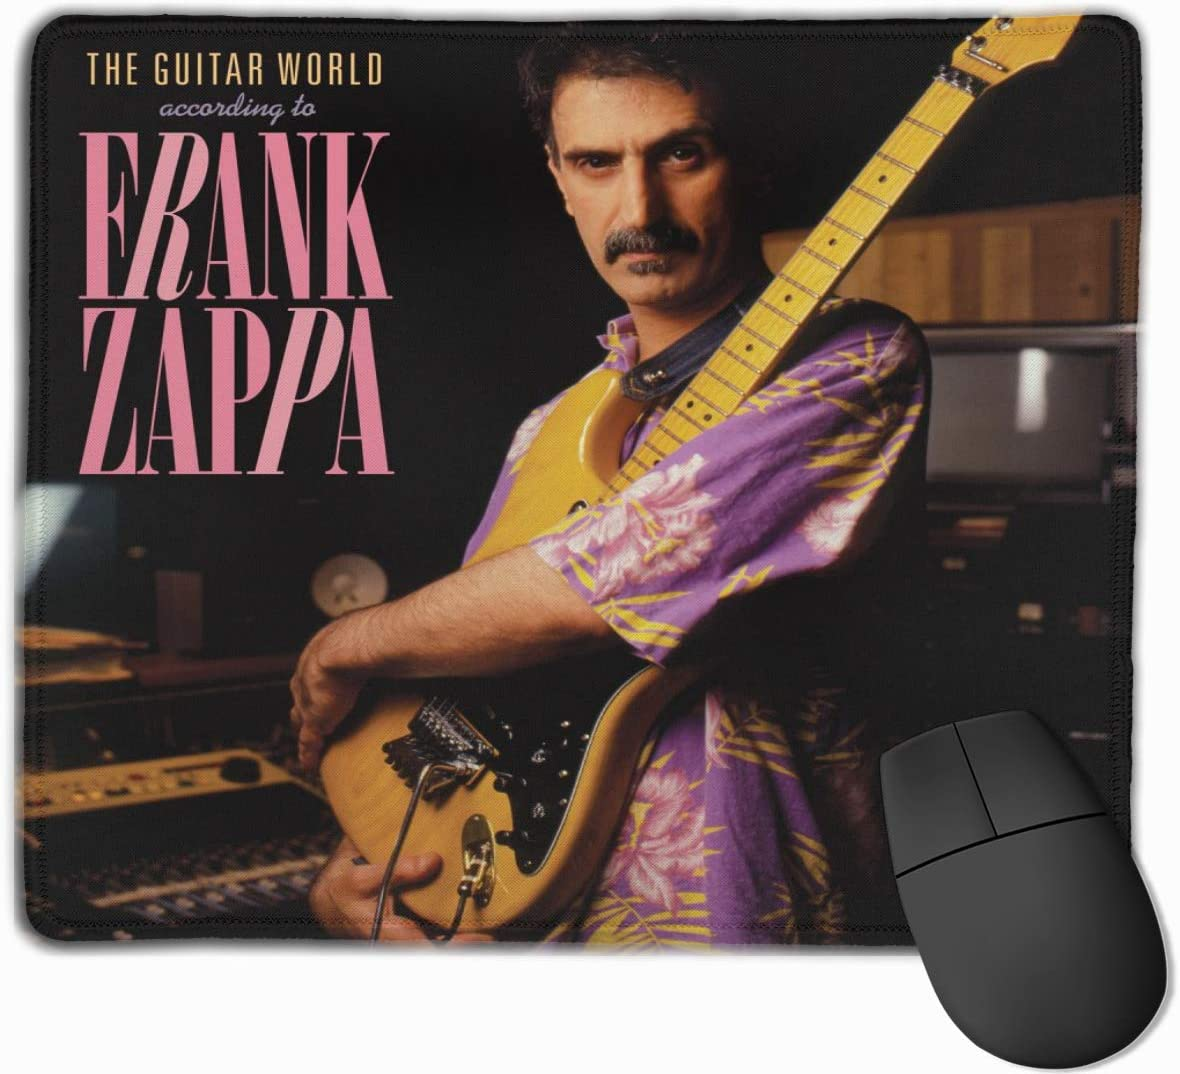 EVE JOHN Polyester Office High-Definition Printing Mouse Pad The Guitar World Frank Zappa